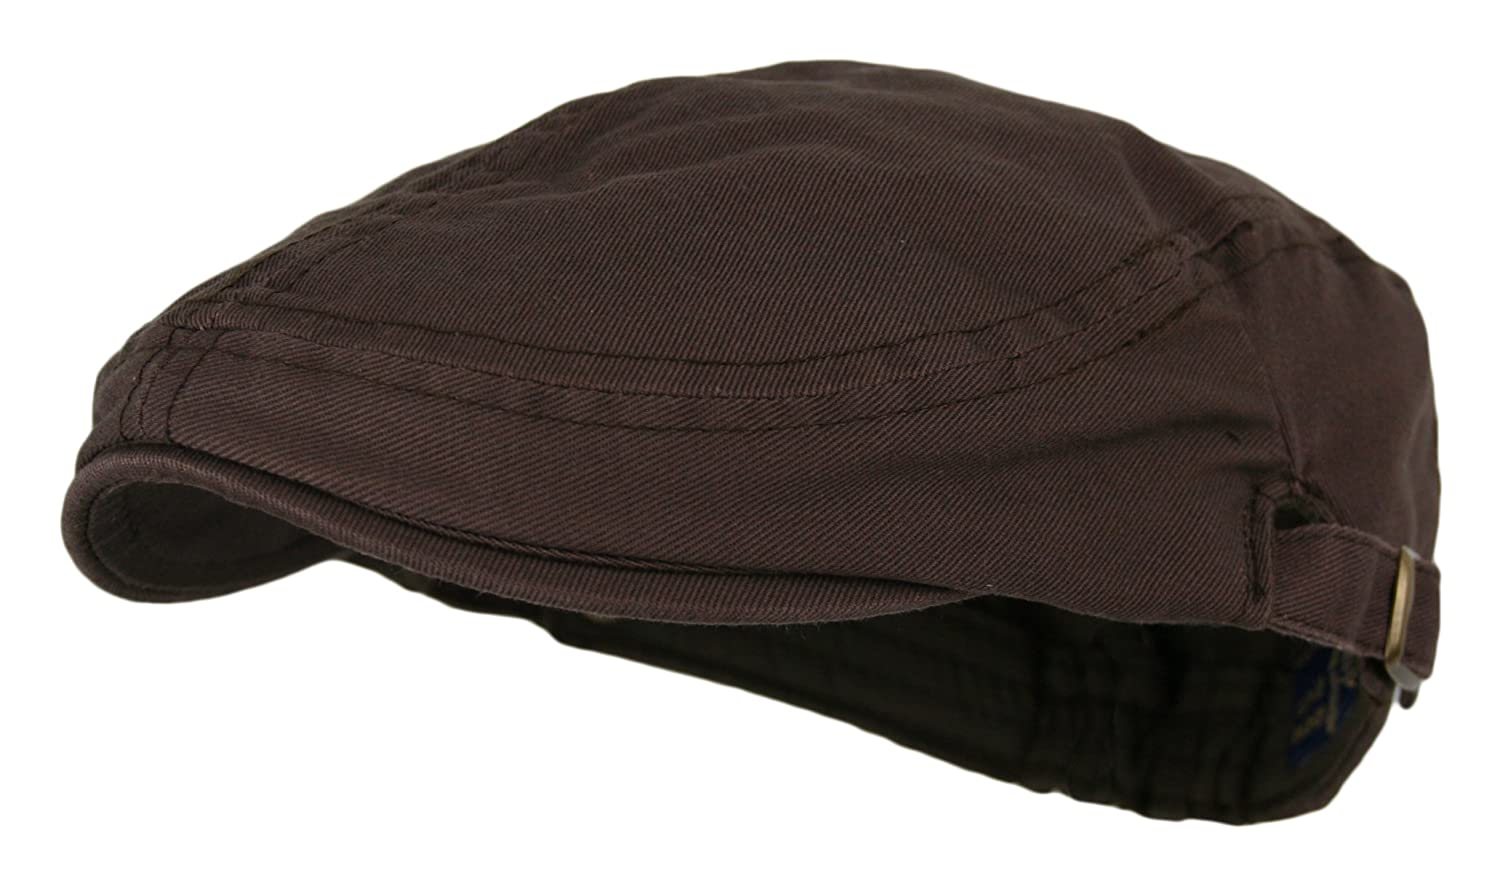 Wonderful Fashion Men's Cotton Flat Cap IVY Gatsby newsboy Hunting Hat Beige One Size